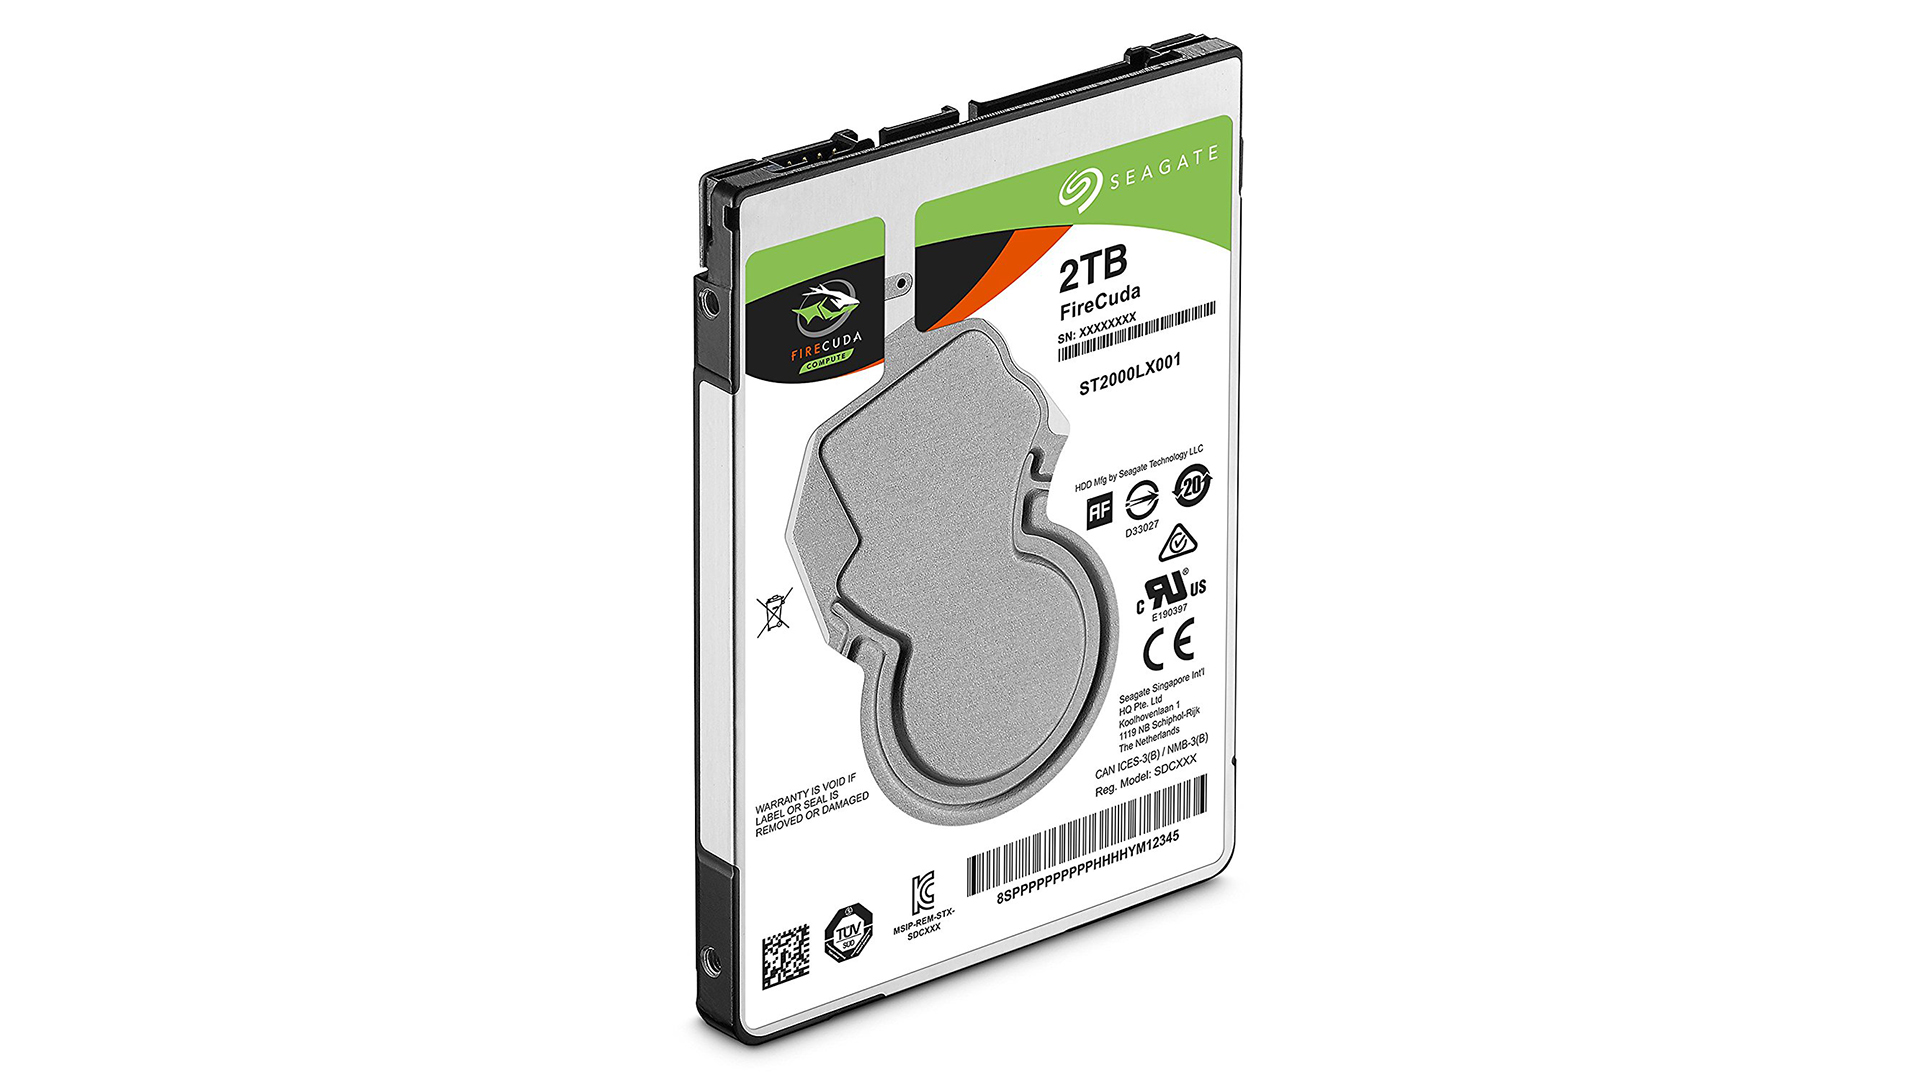 Best laptop hard drive: Seagate FireCuda Mobile